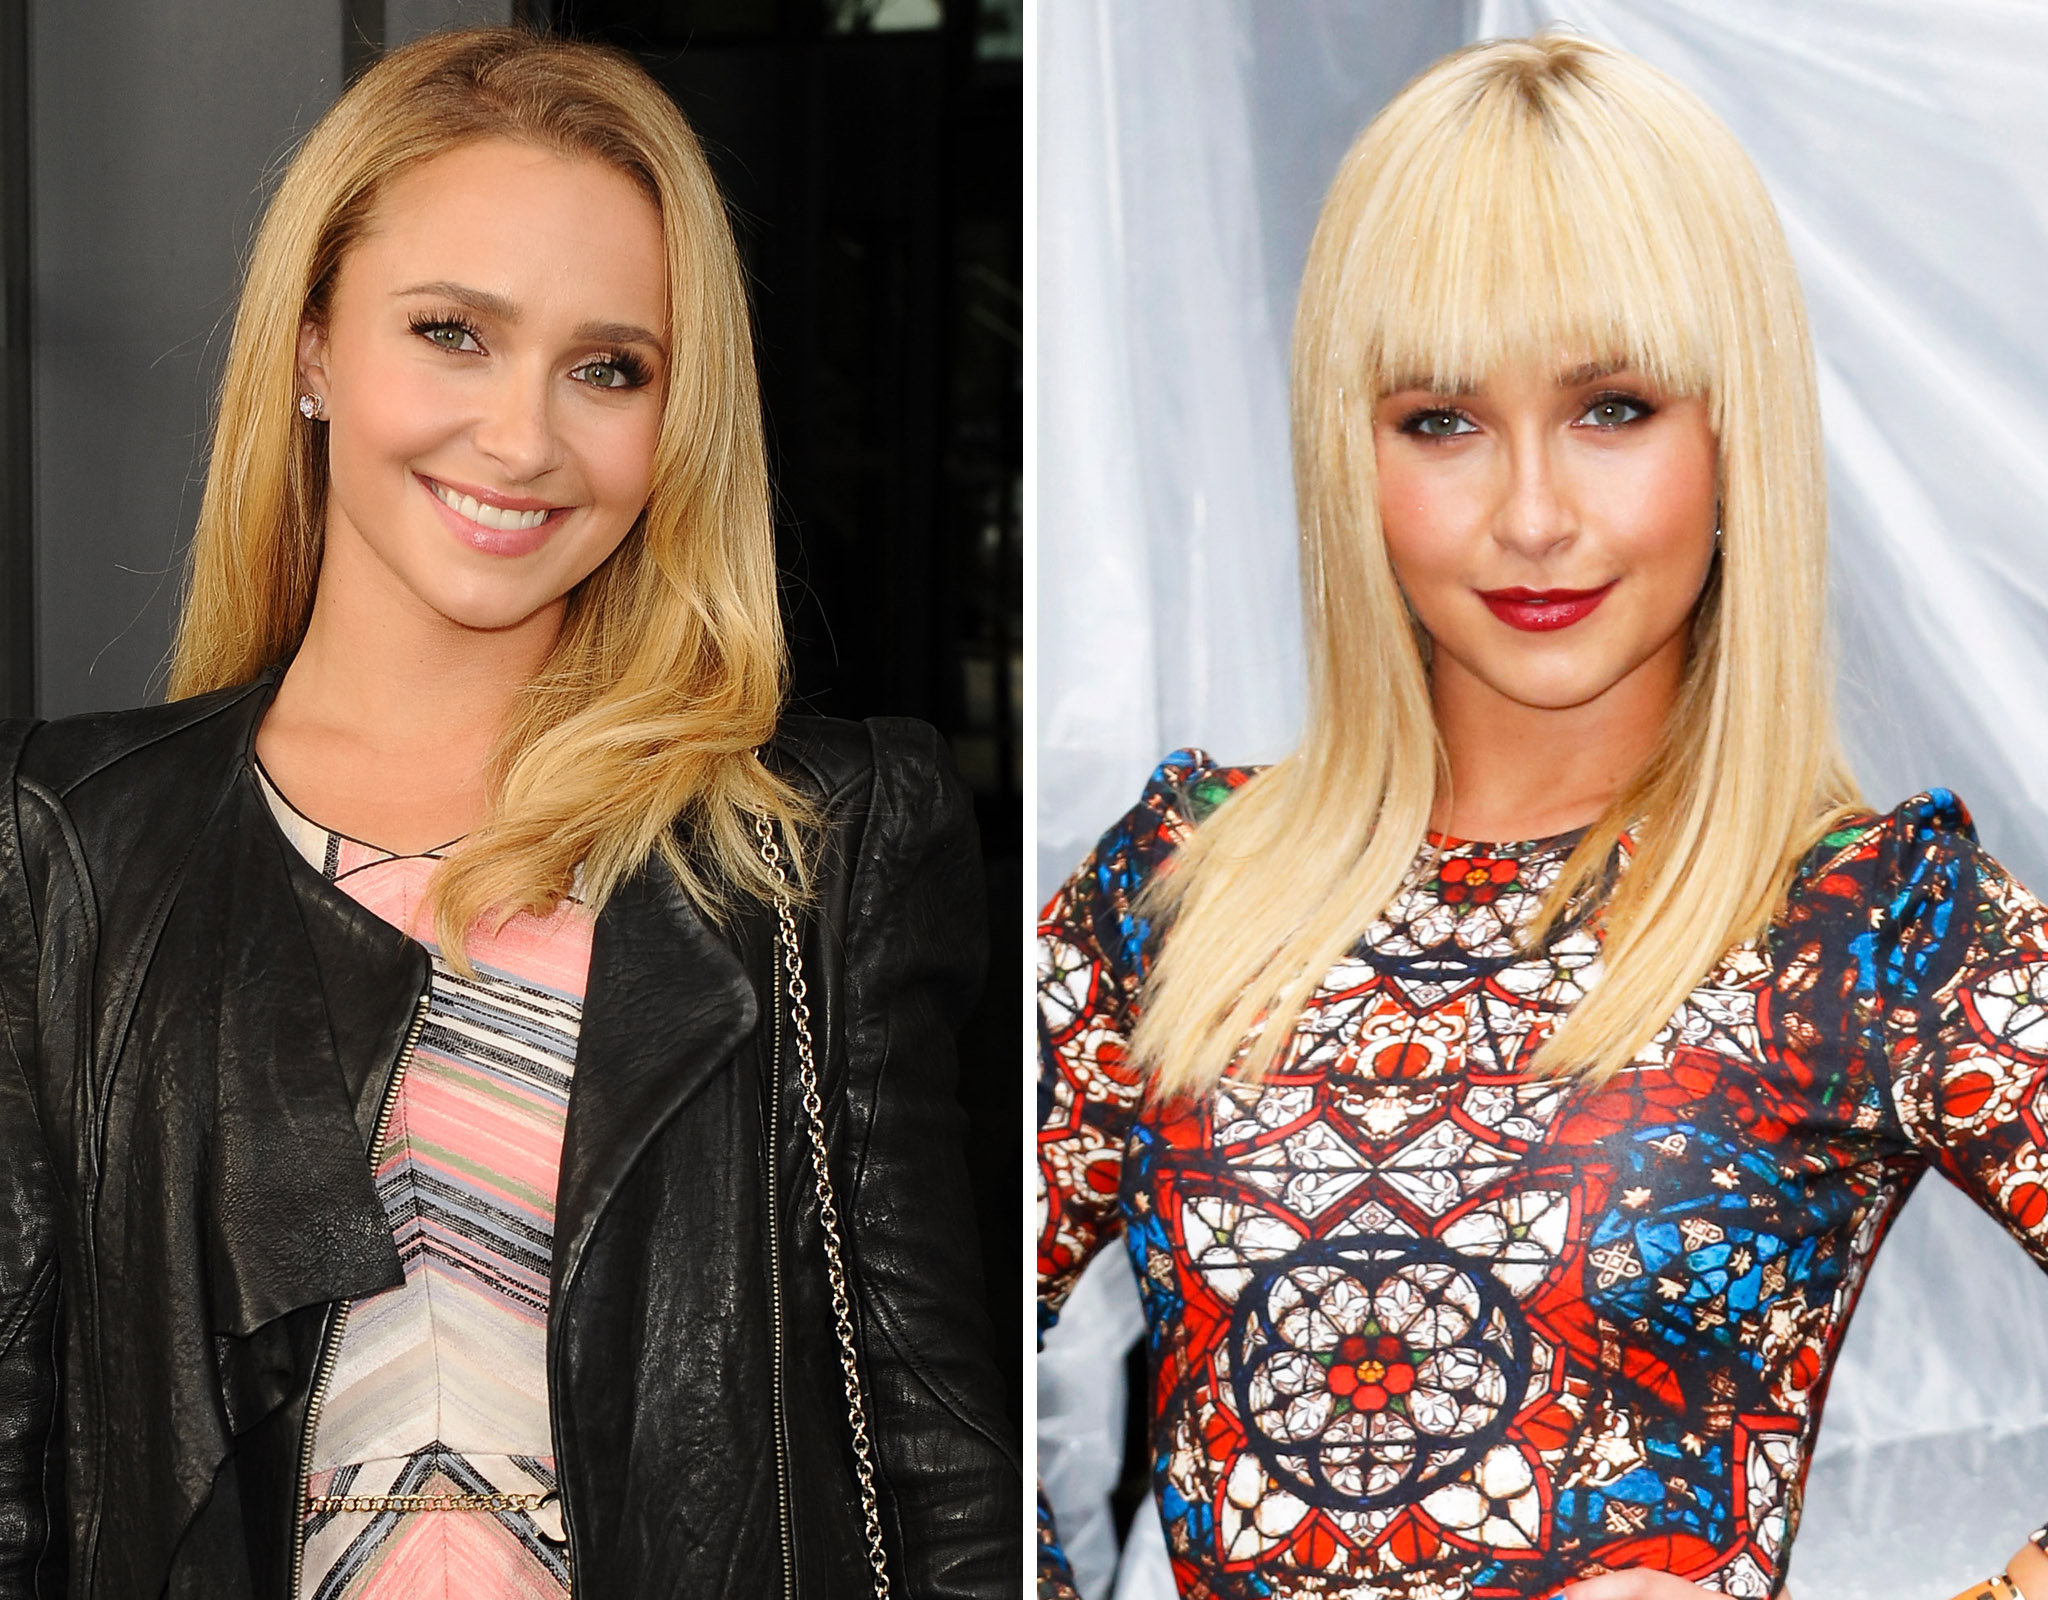 Hayden Panettiere (Splash News/Splash News)